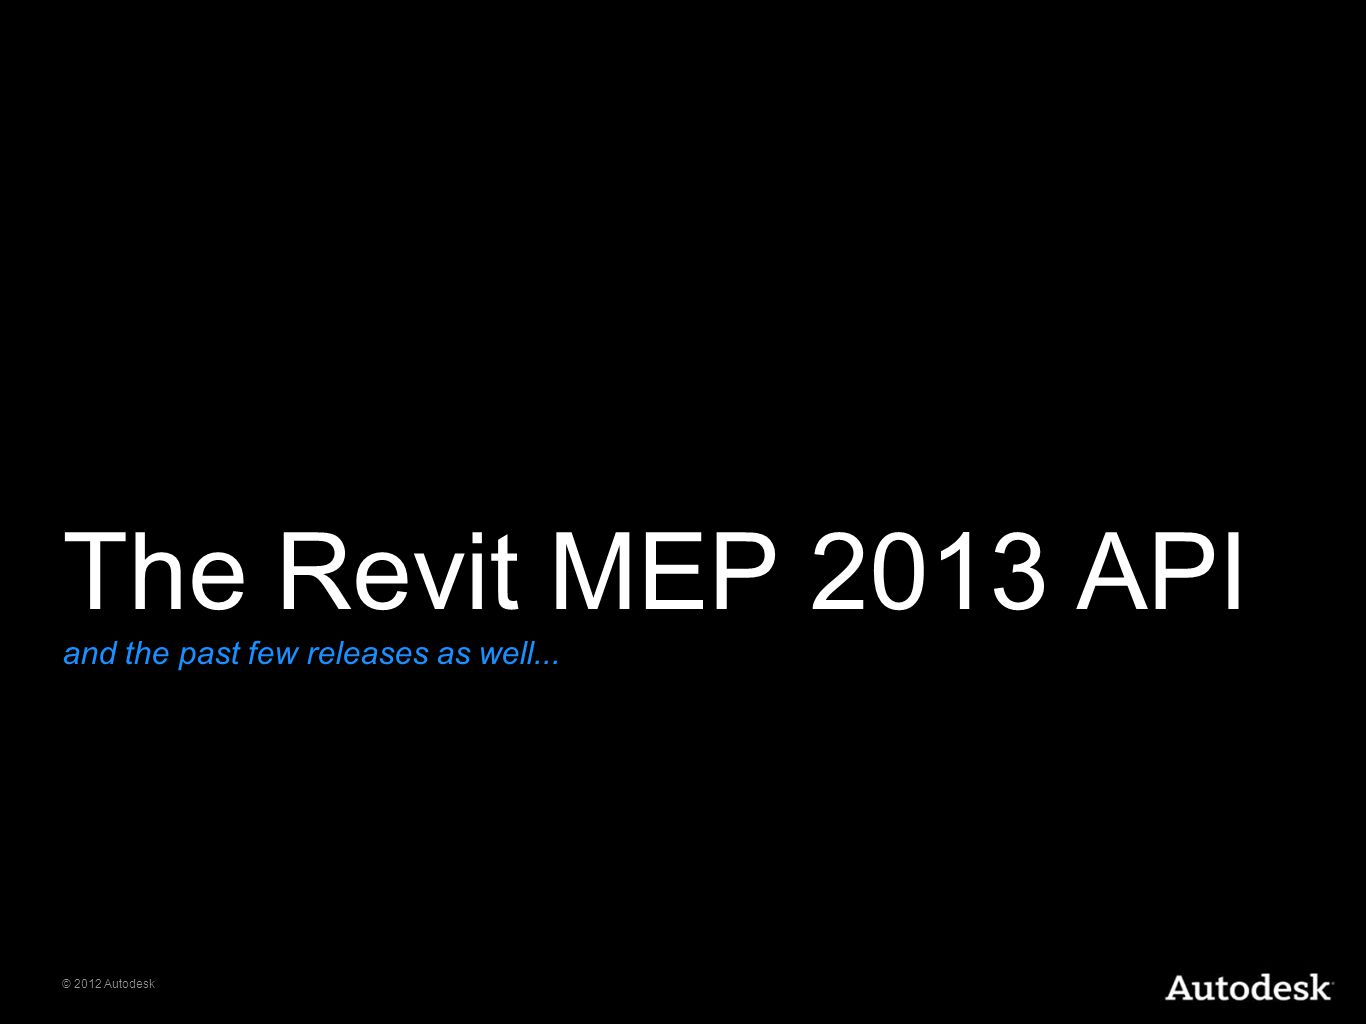 The Revit MEP 2013 API and the past few releases as well...